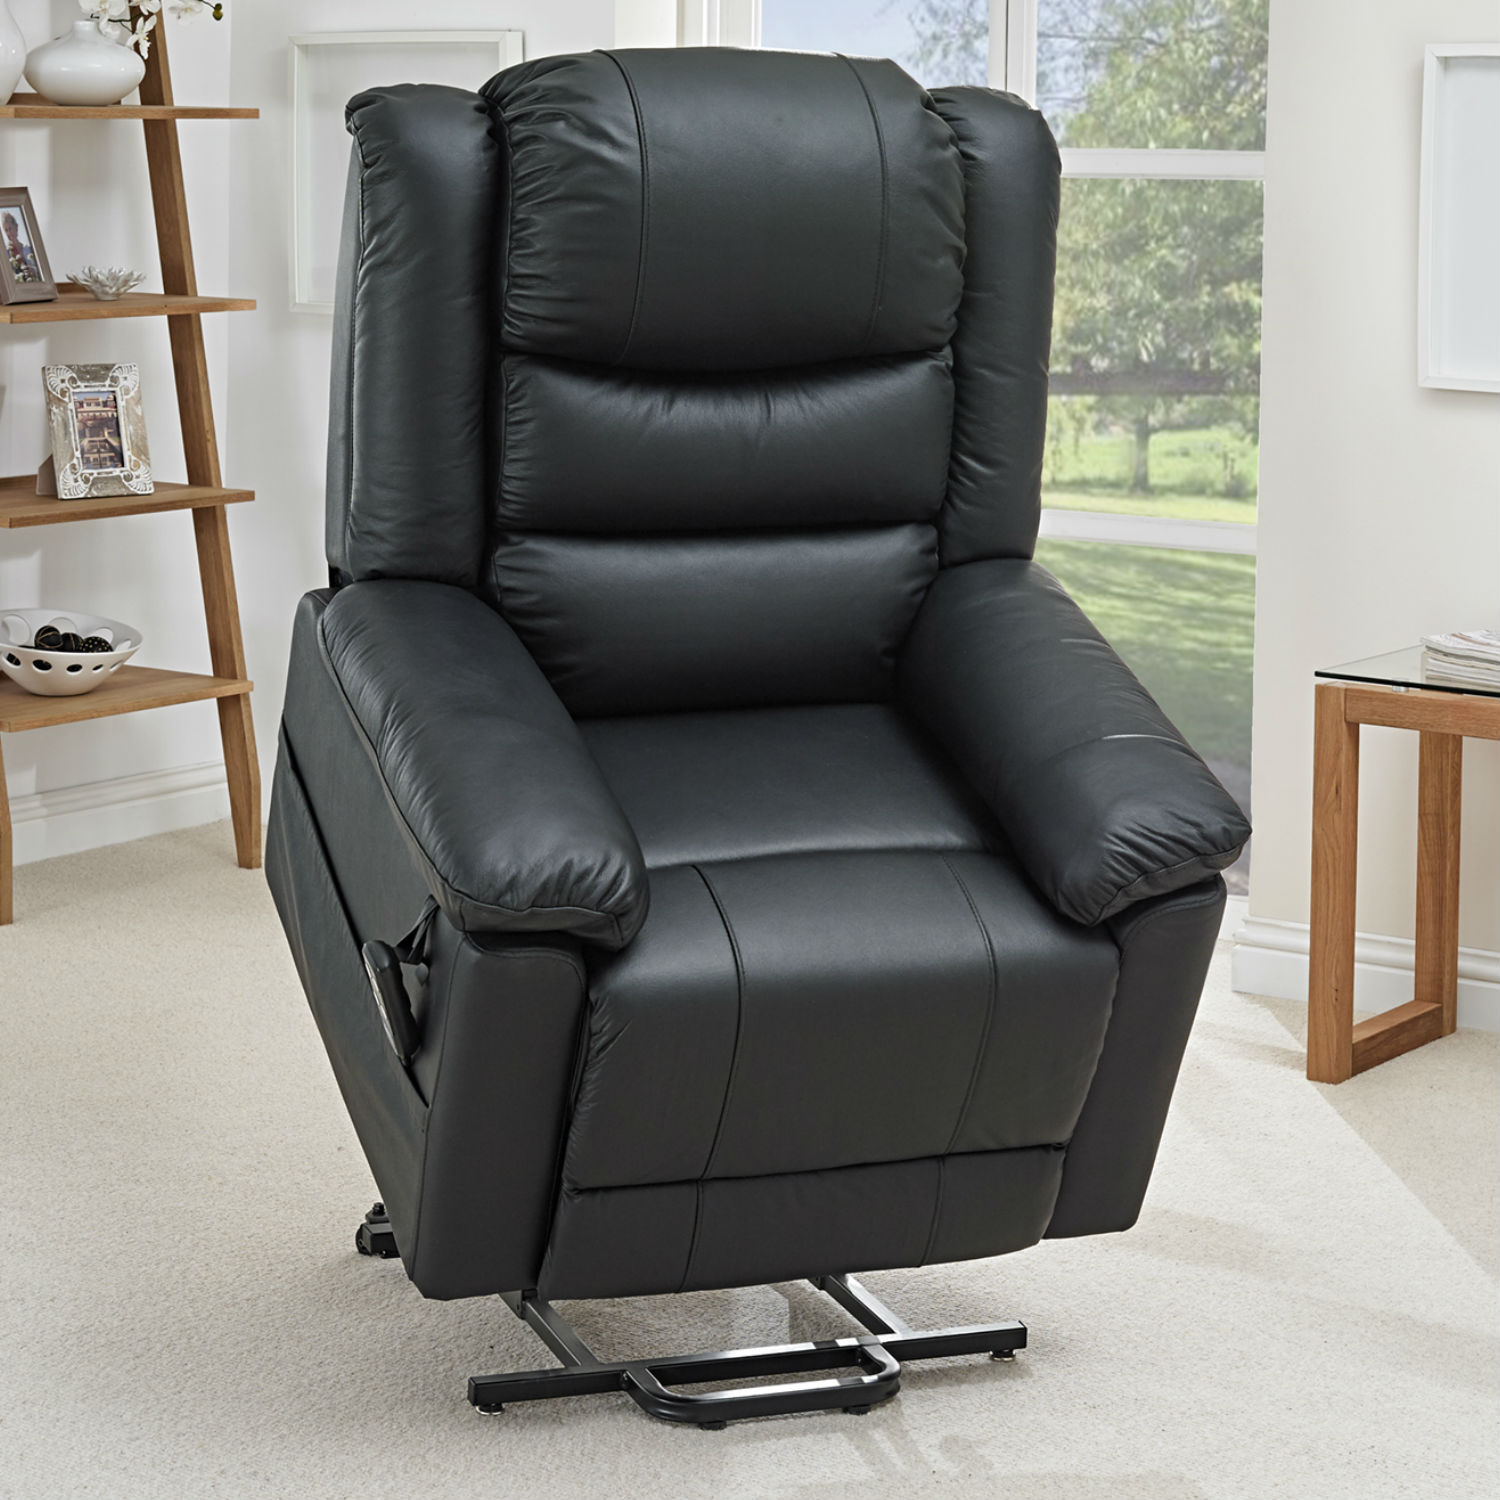 Details about NEW Toronto Leather Riser Recliner Chair